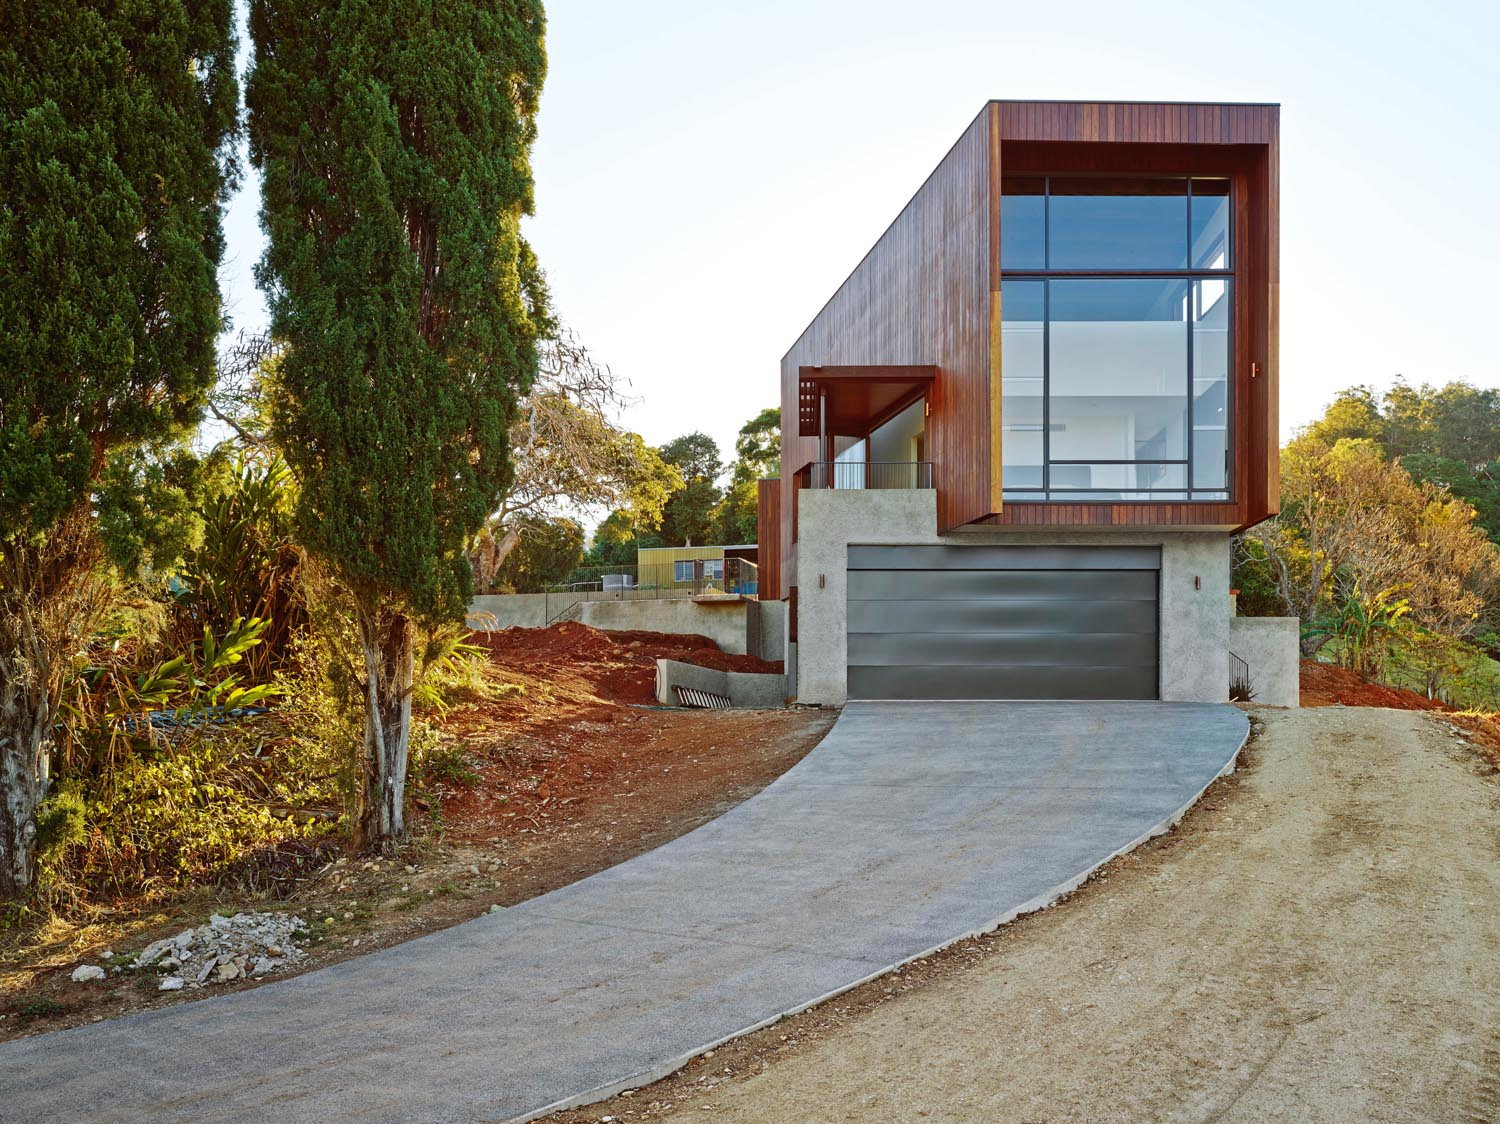 Grand Designs Australia: Futuristic farmhouse - Completehome